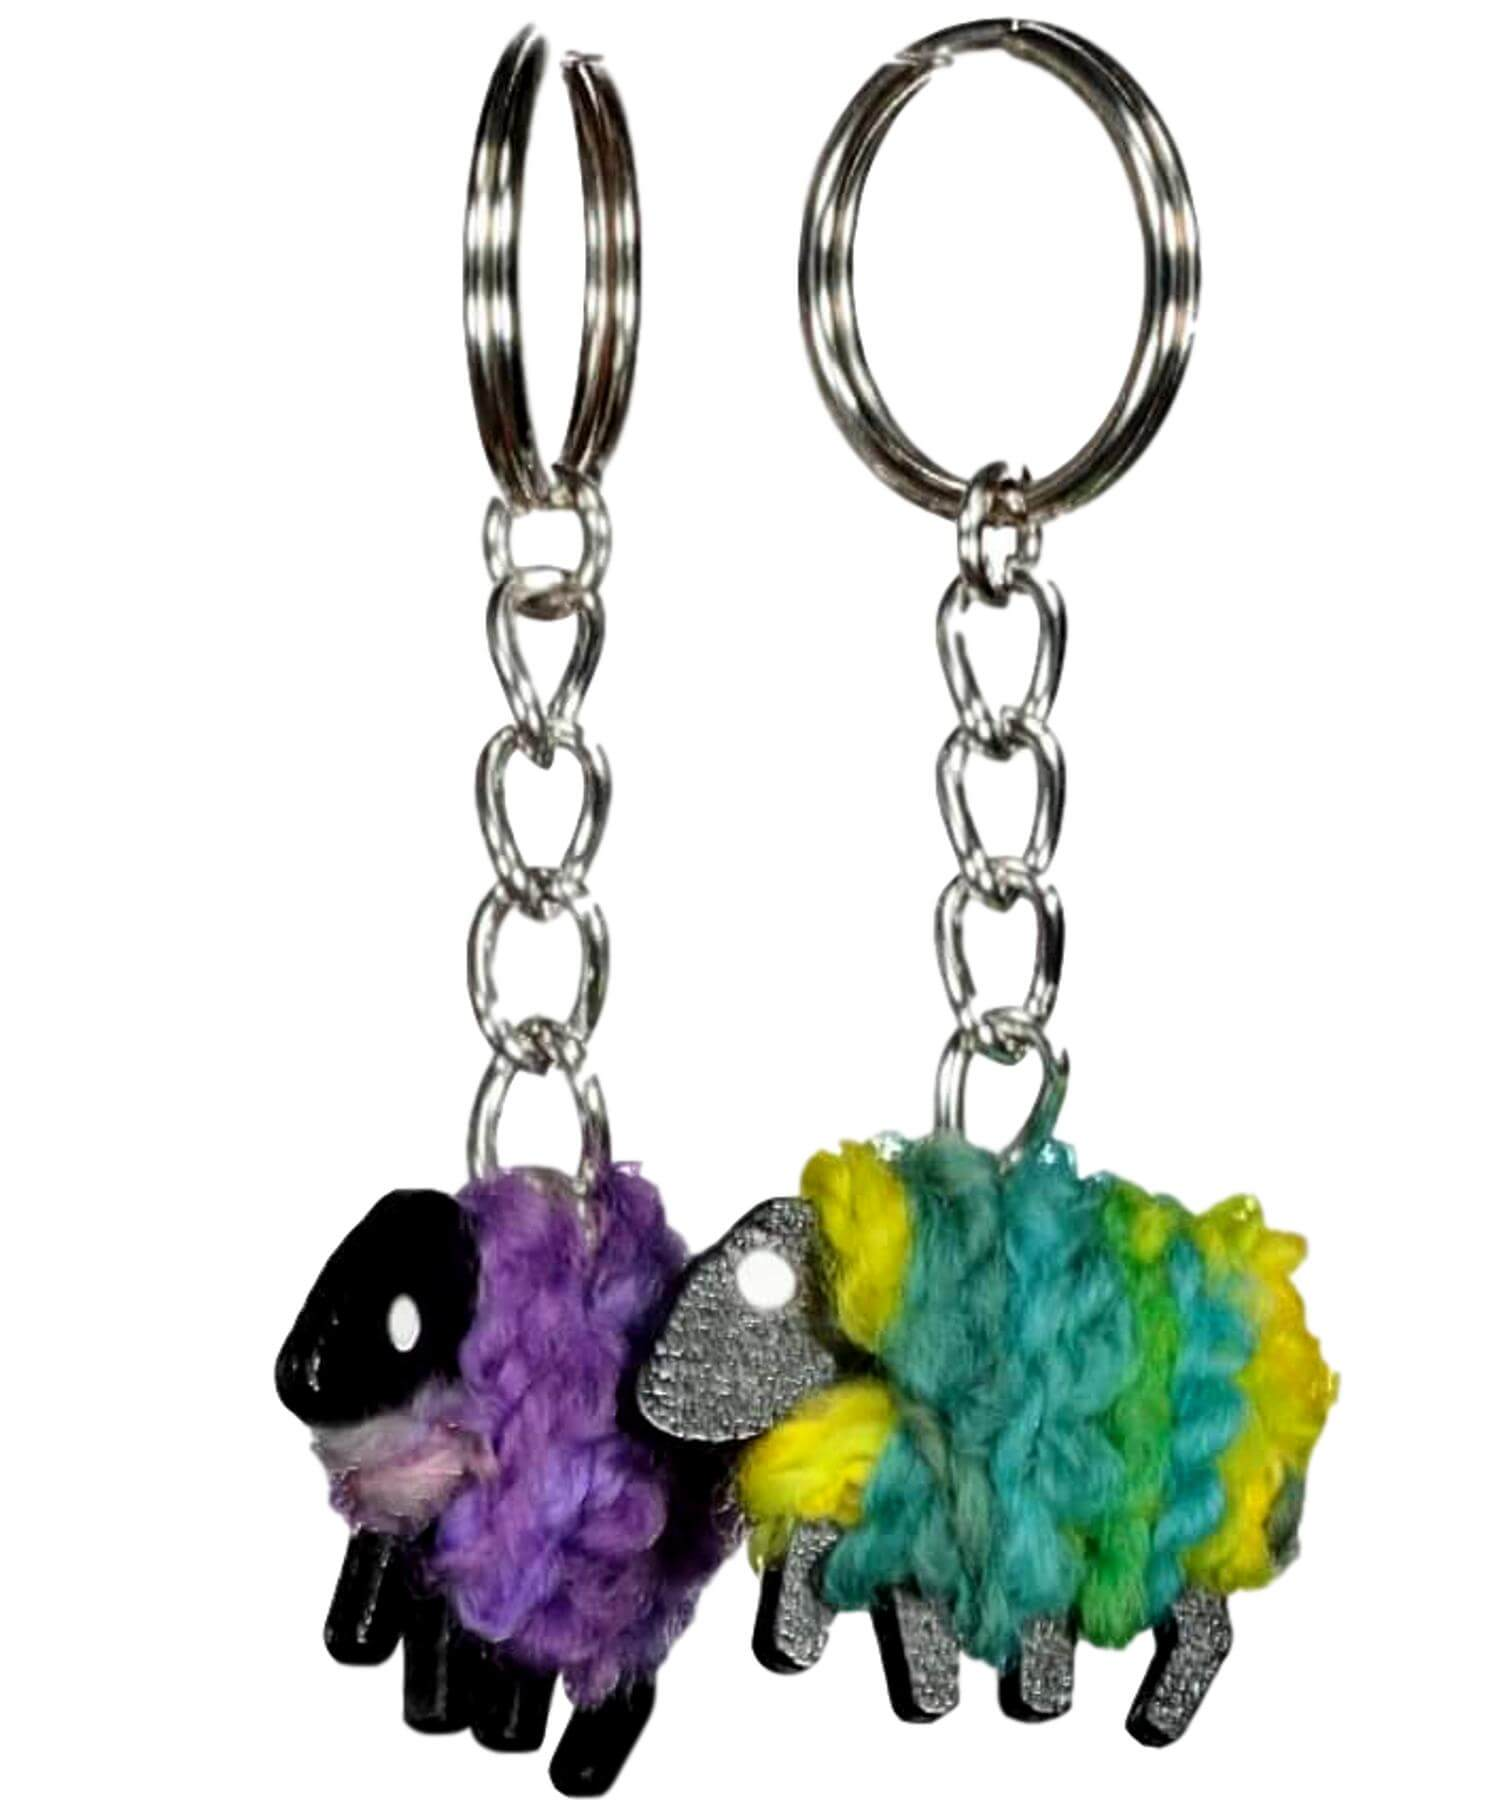 Handcrafted Sheep - Key Ring - [Liz Christy] - Souvenir - Irish Gifts